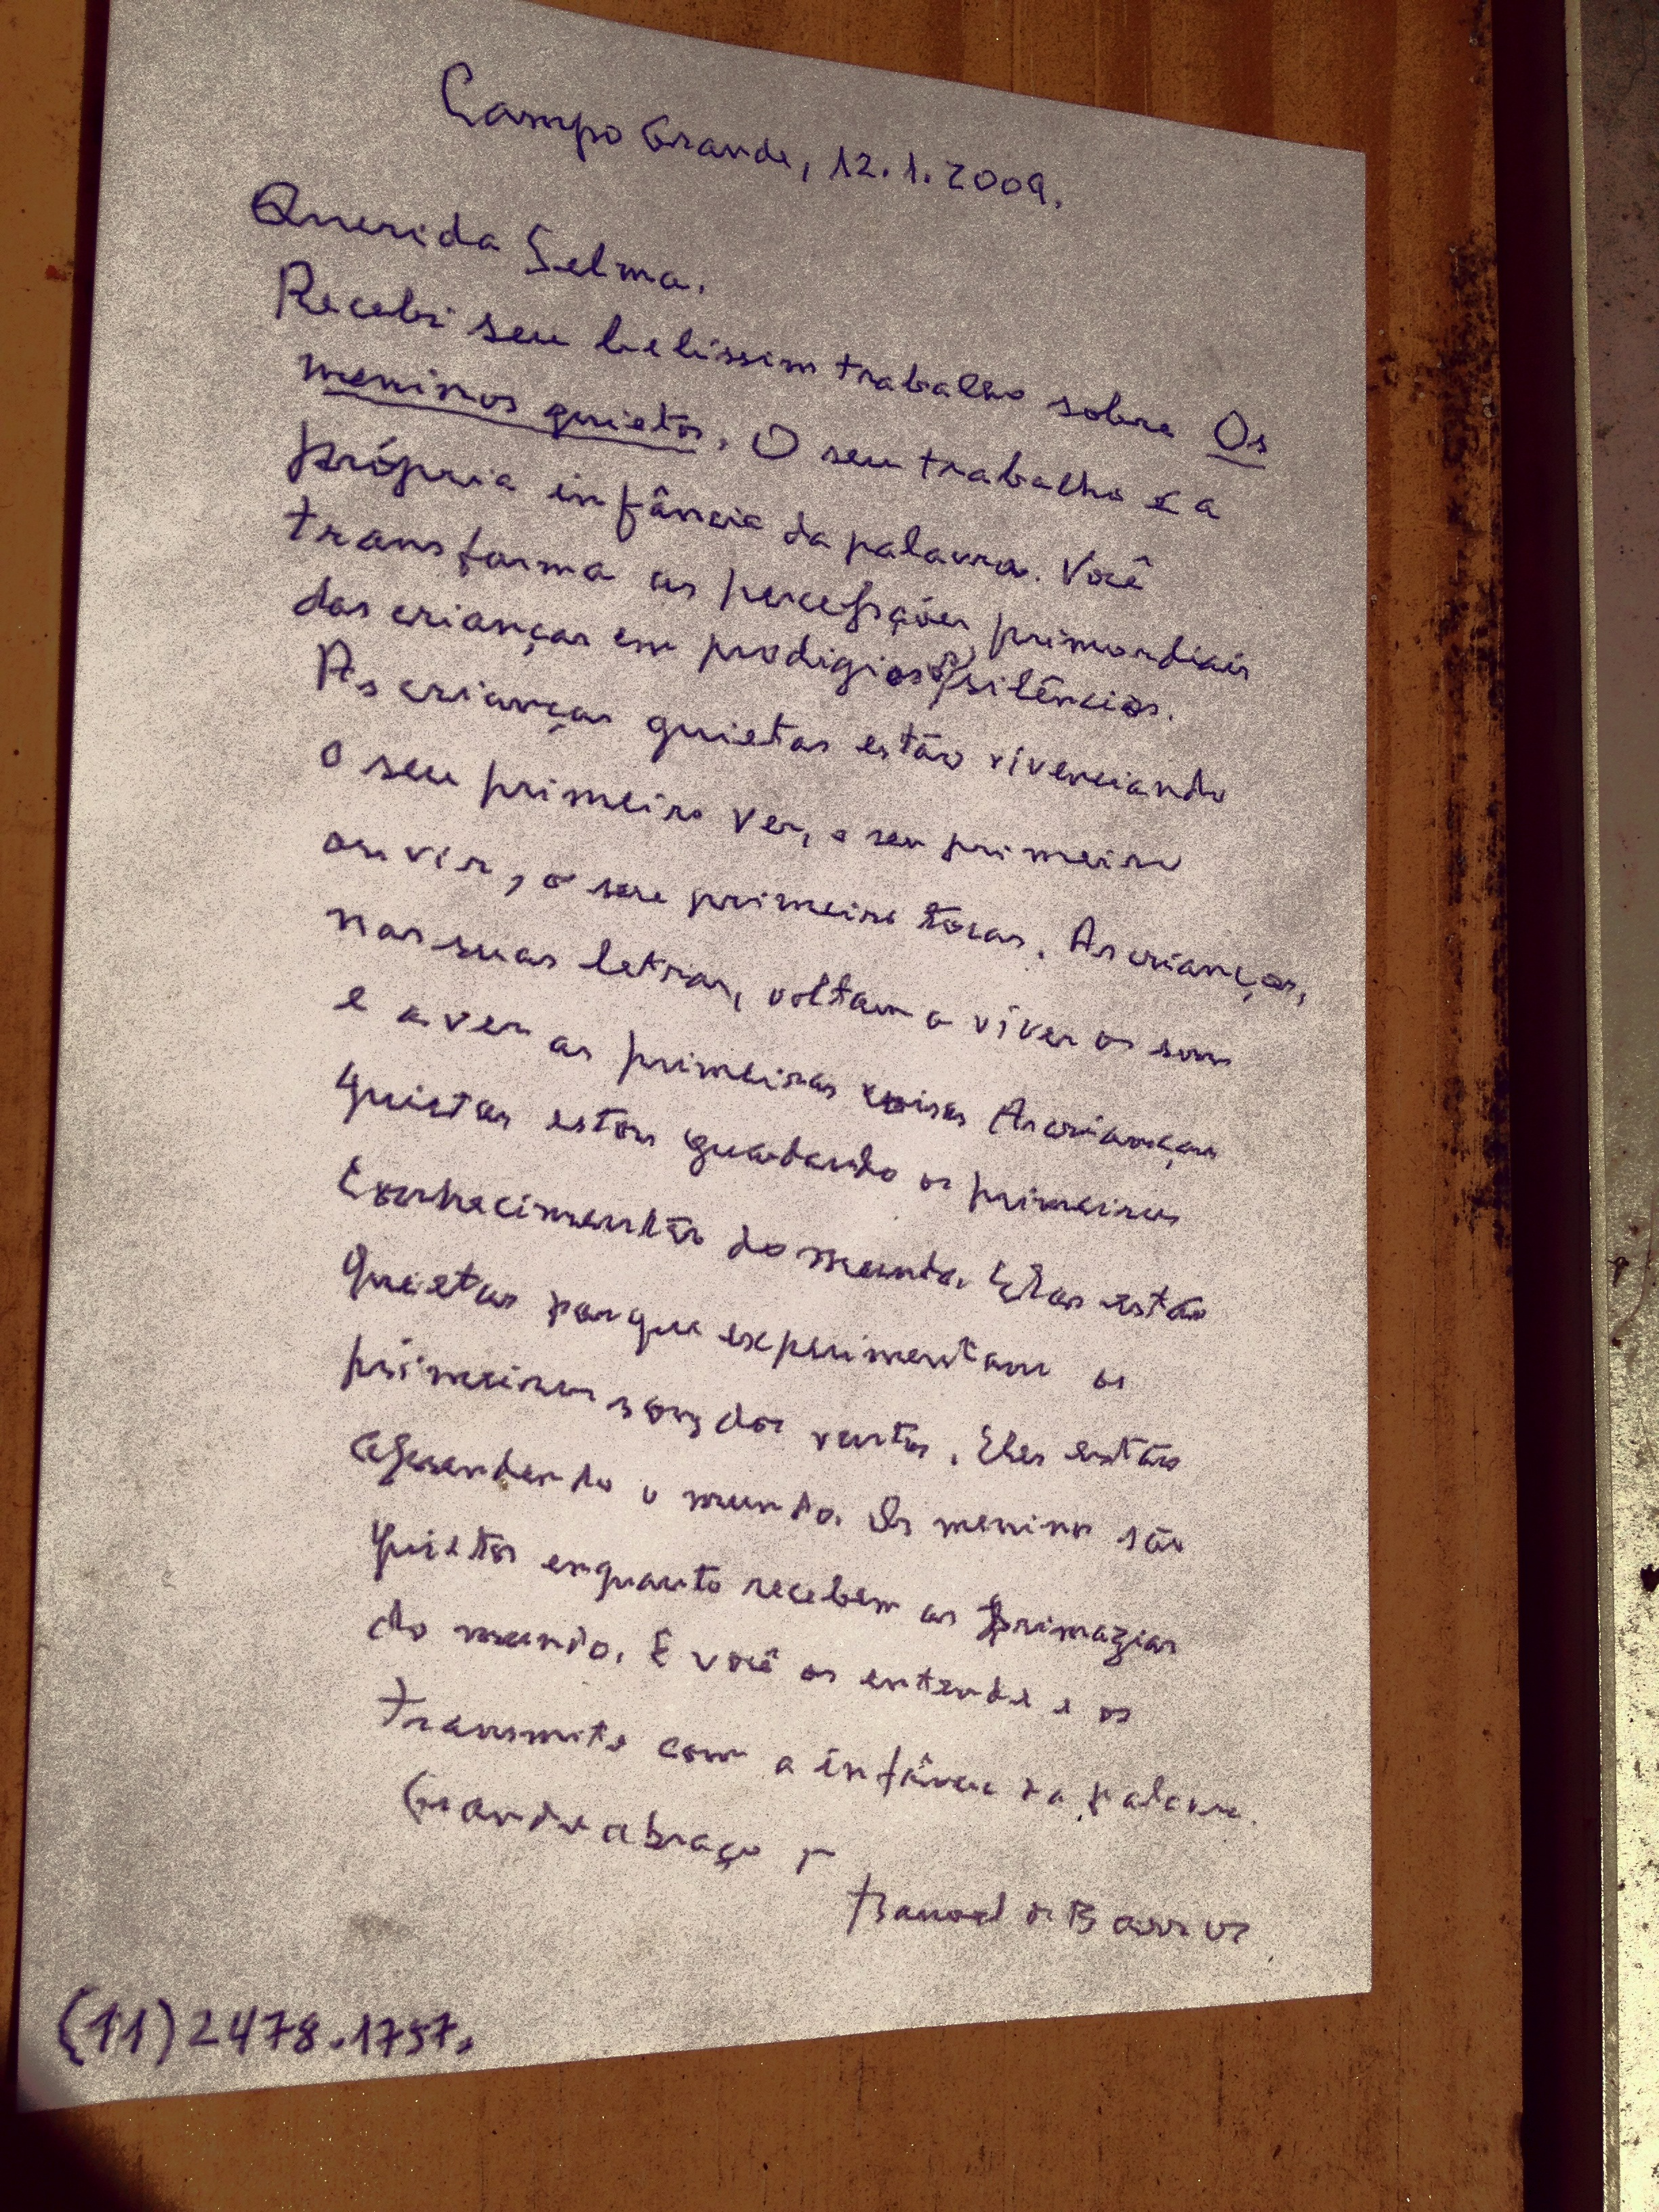 Carta de Manoel de Barros